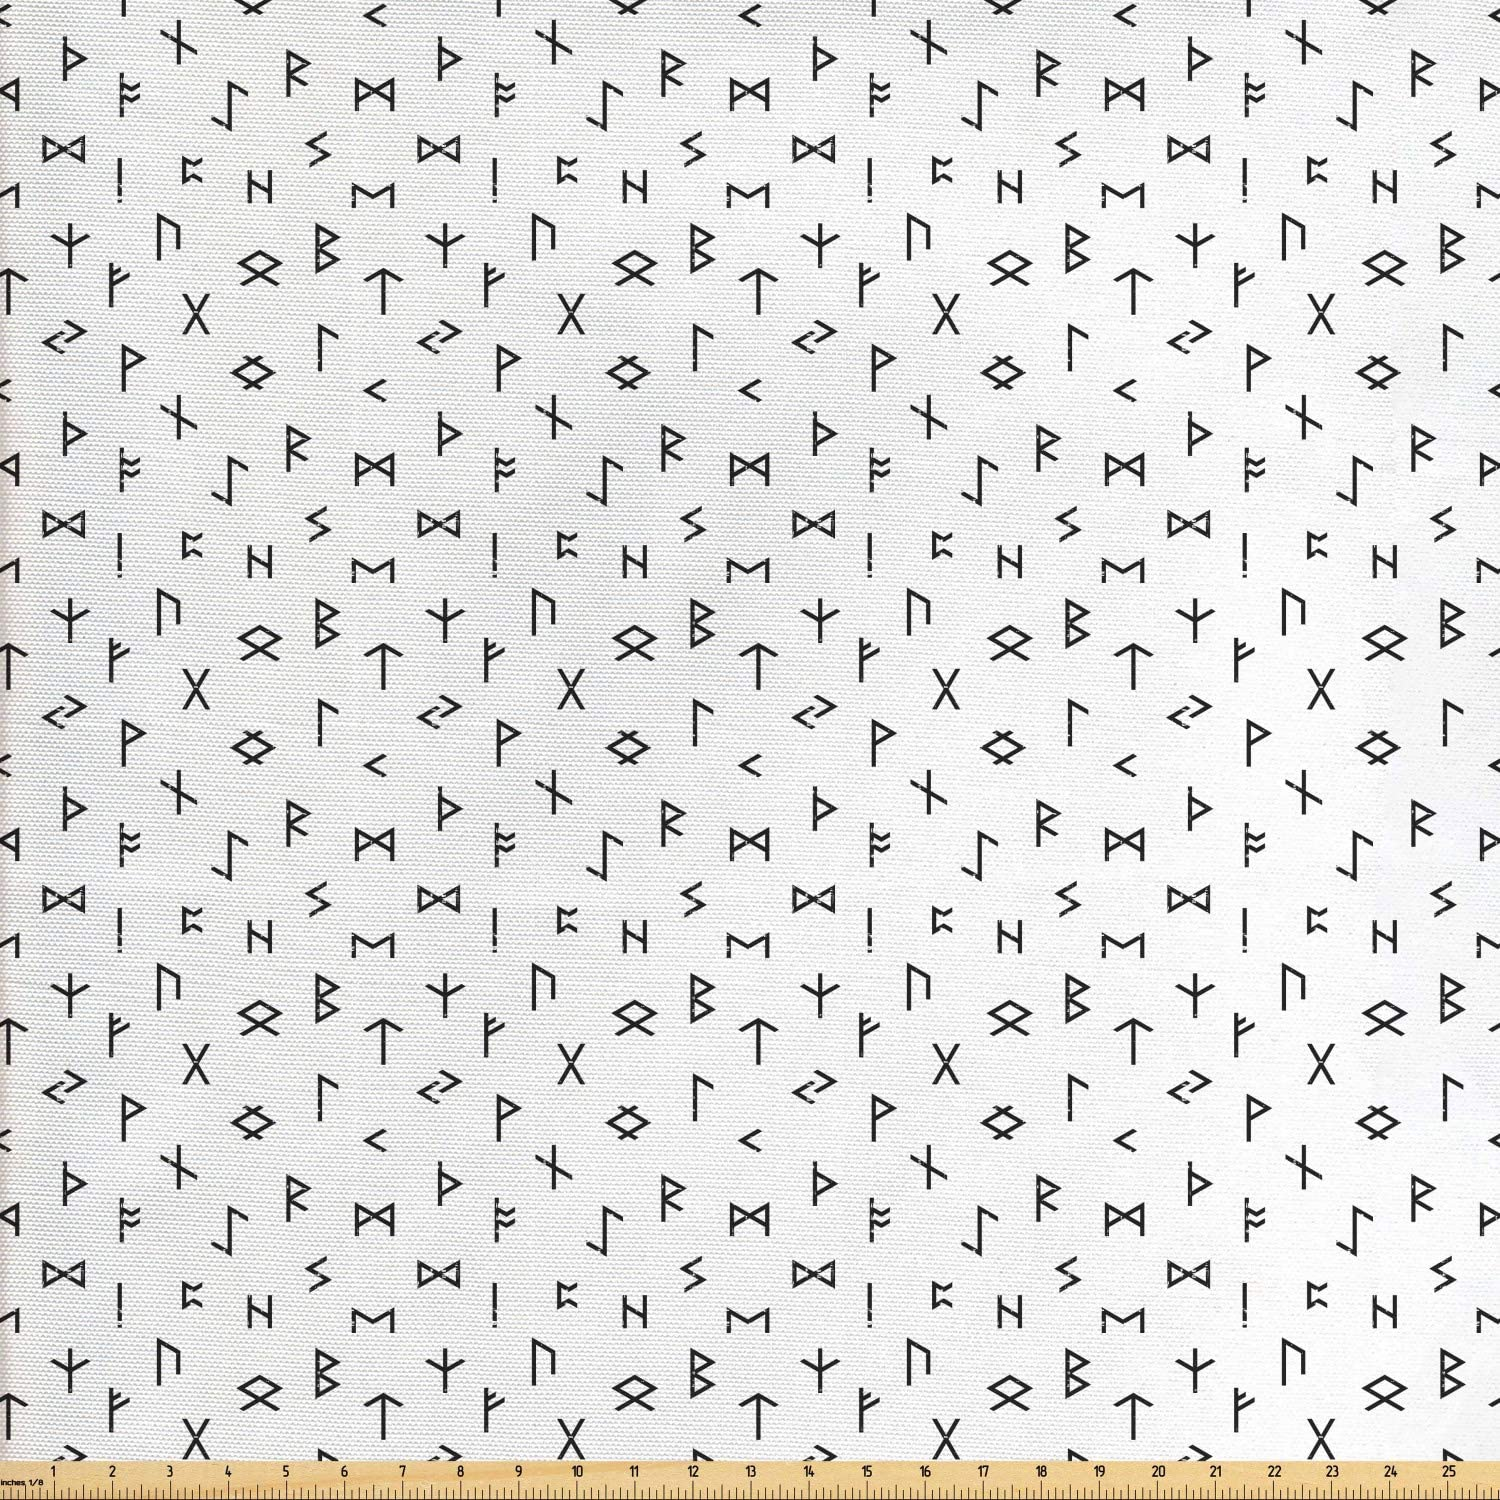 Ambesonne Occult Fabric by The Yard, Minimalist Anatolian Tribal Hieroglyph Mythologic Alphabet Artwork Print, Decorative Fabric for Upholstery and Home Accents, 1 Yard, Black White